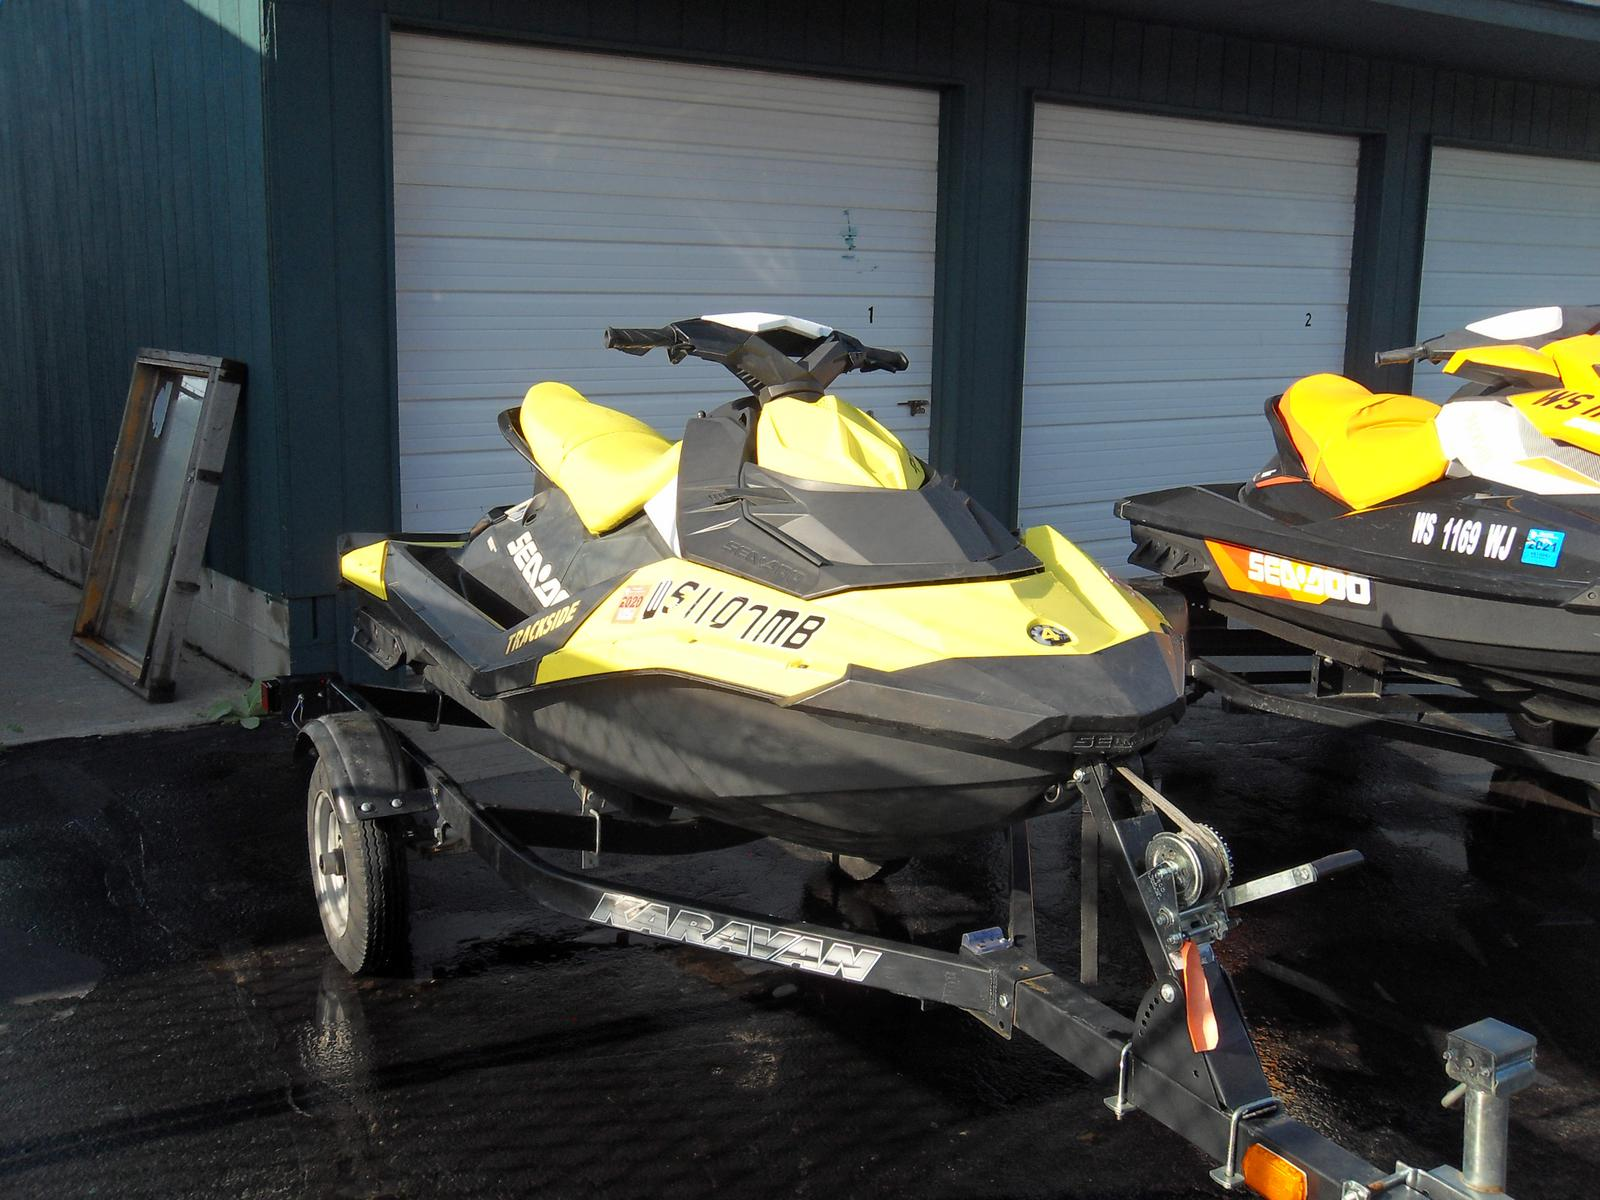 Inventory from Sea-Doo Track Side Eagle River, WI (715) 479-2200